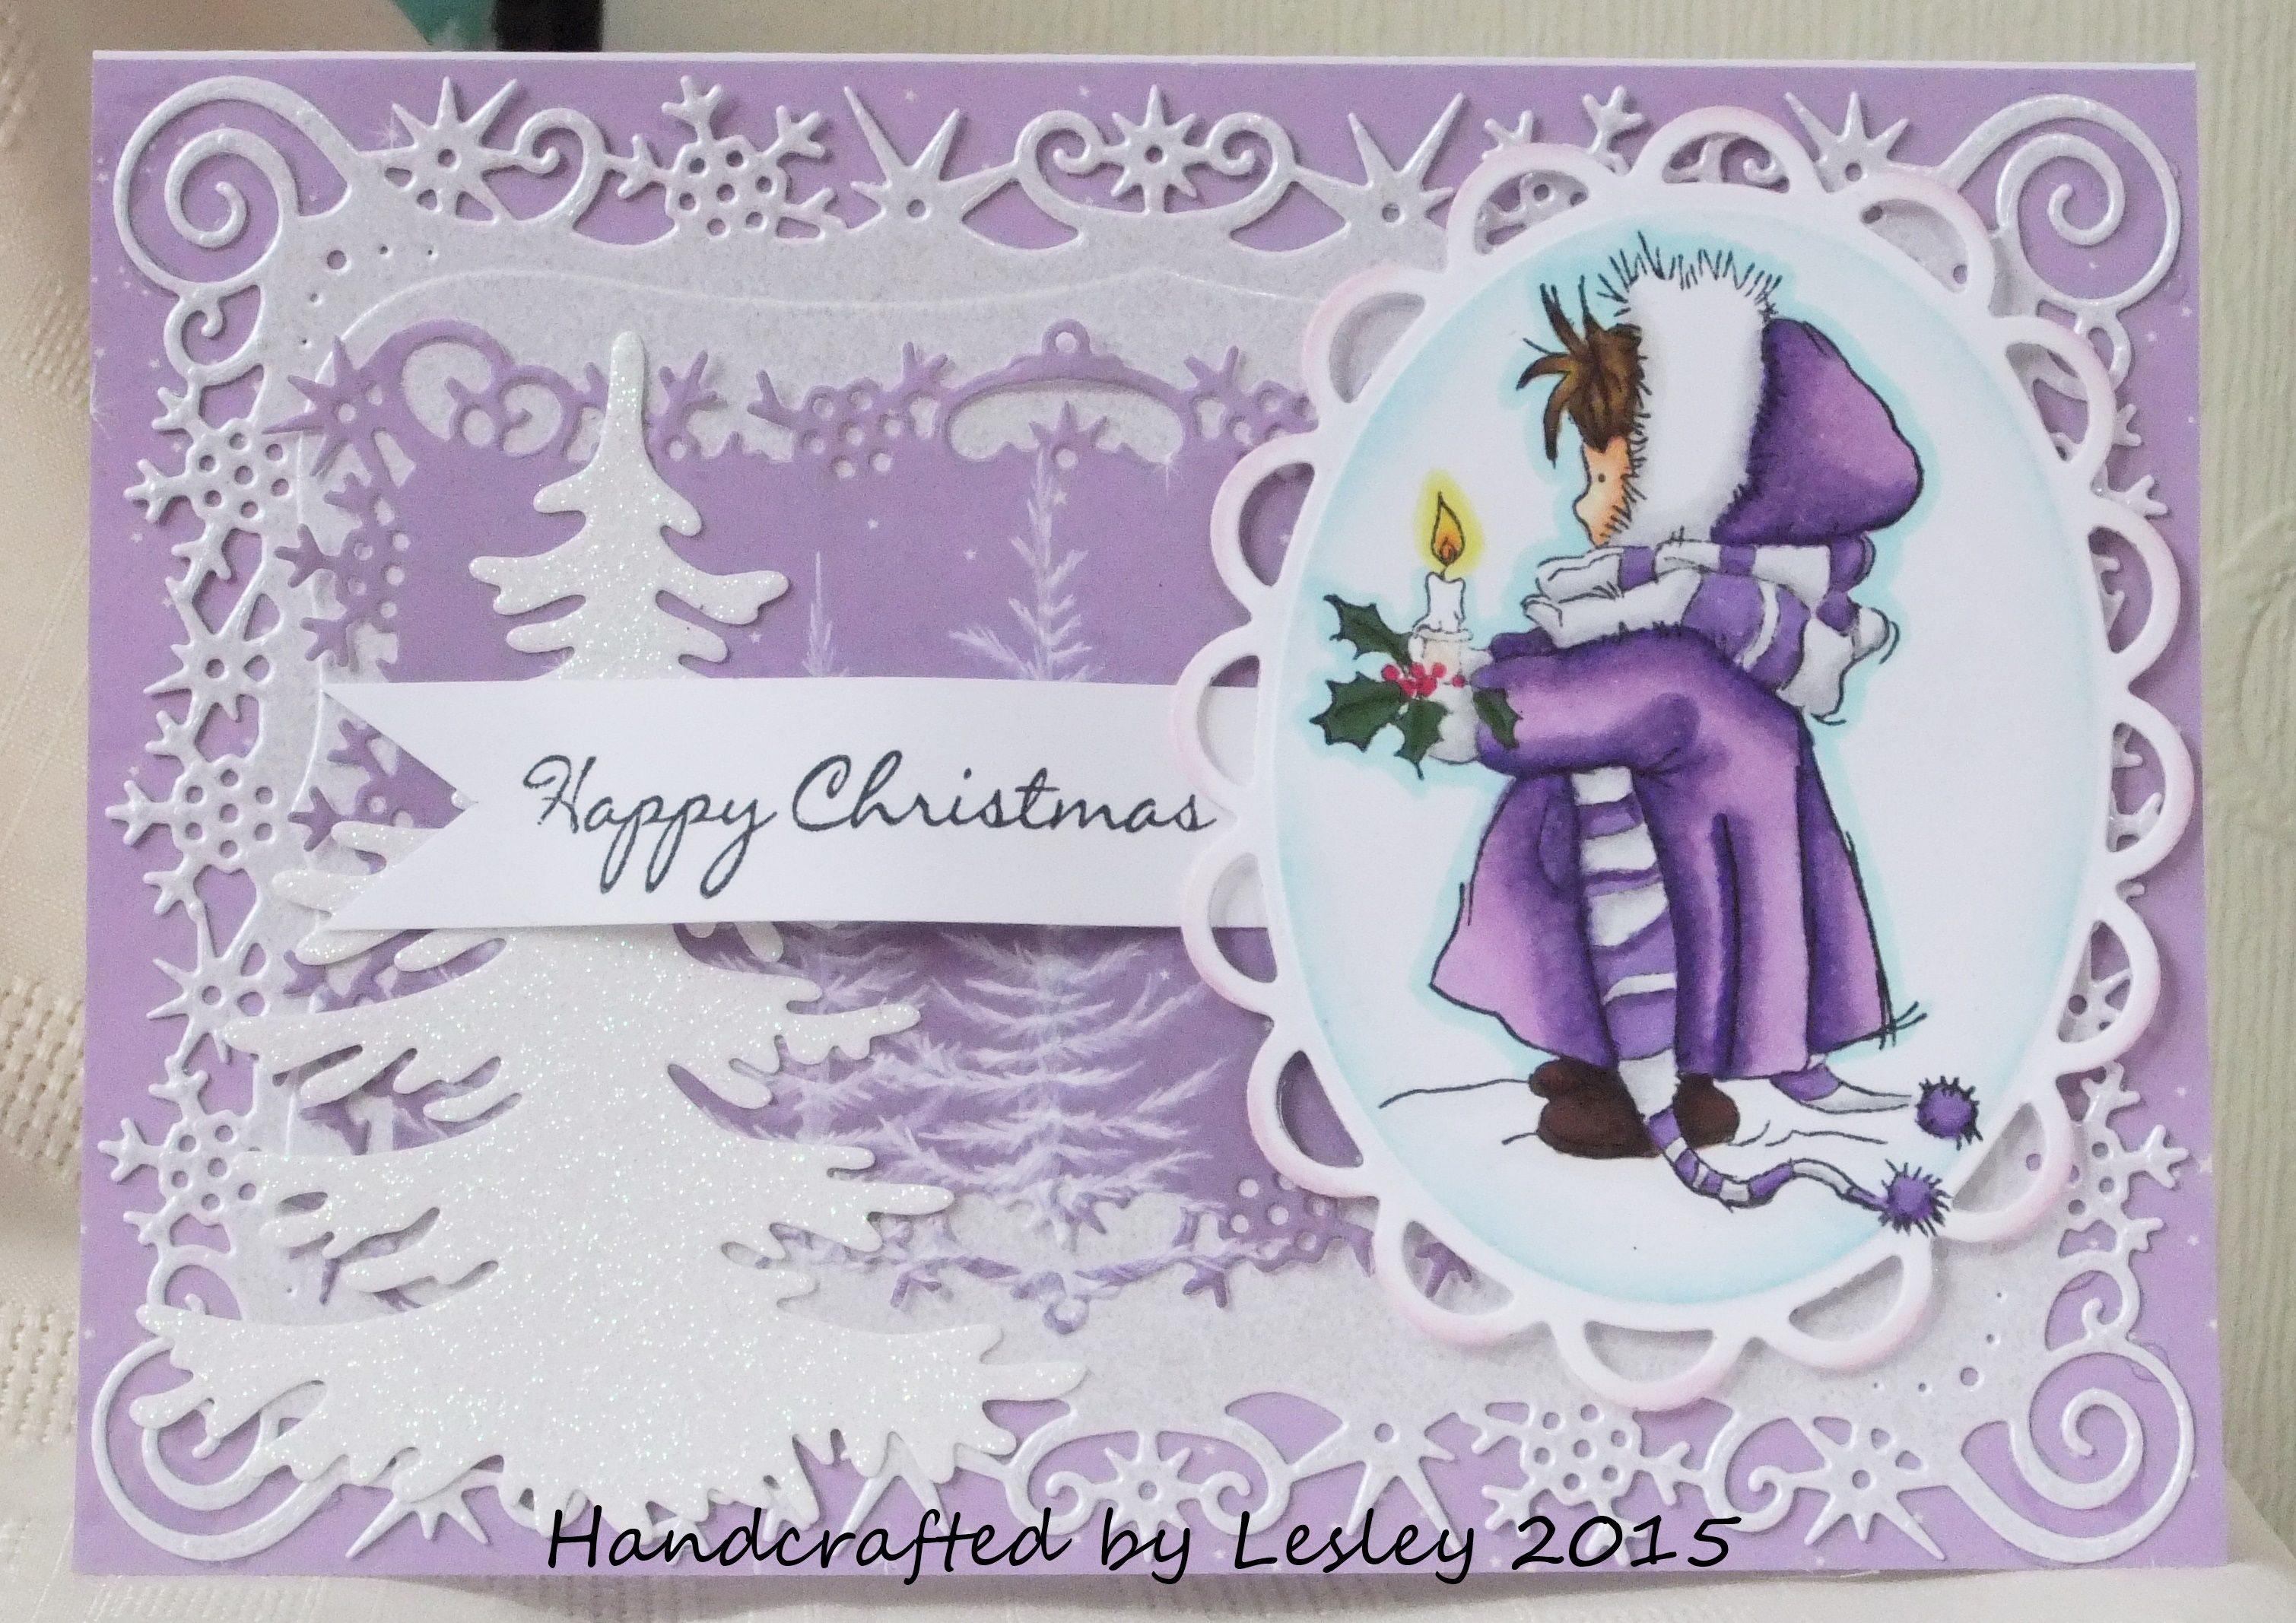 My first card for the Fantasy Stampers Design Team. I have used a LOTV stamp and coloured it with my Spectrum Noir pens and pencils. More details can be found at http://stampingbubbles.blogspot.co.uk/2015/08/some-exciting-news-and-colour-purple.html